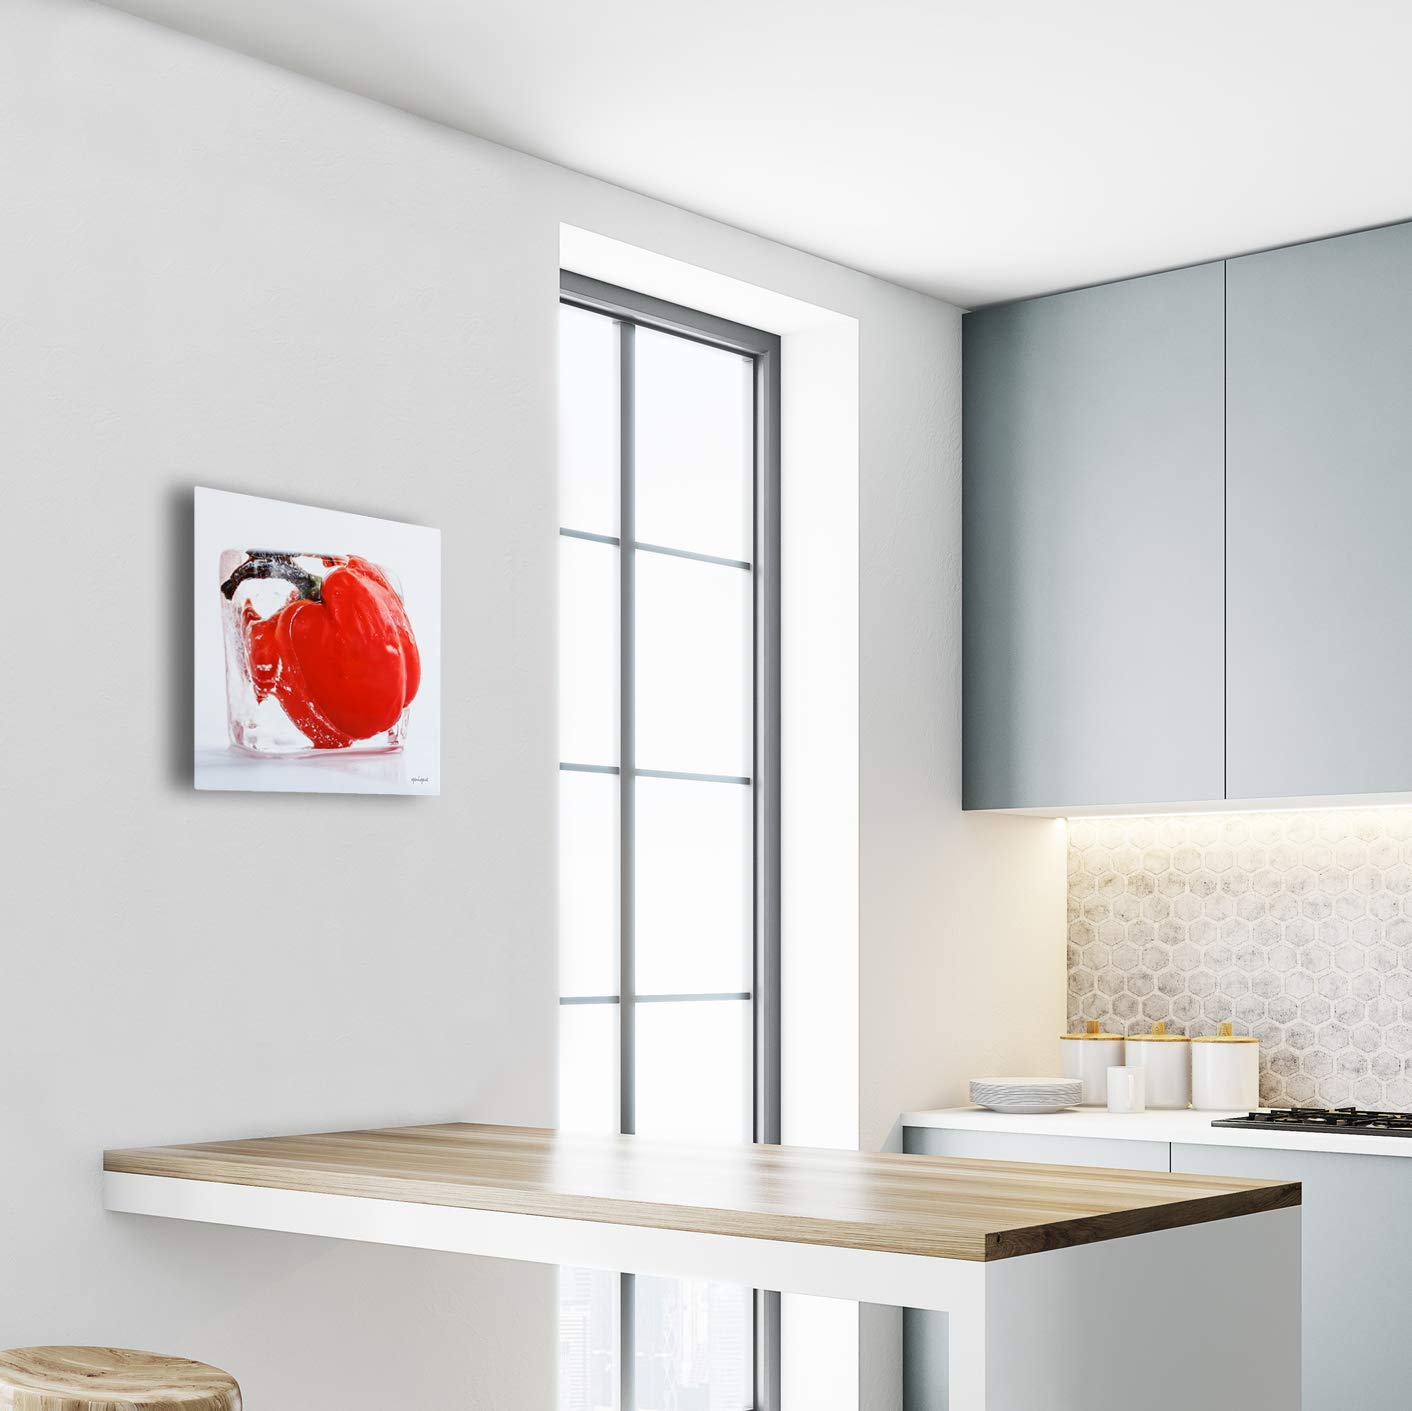 Kitchen Decor Photography of Vegetables or Fruits inside ice cubes Printed in Metal 16x16 inches Perfect for Kitchen Wall Decor Red or Green Ready to Hang as your Kitchen decorations Red Pepper Quique Photography TM